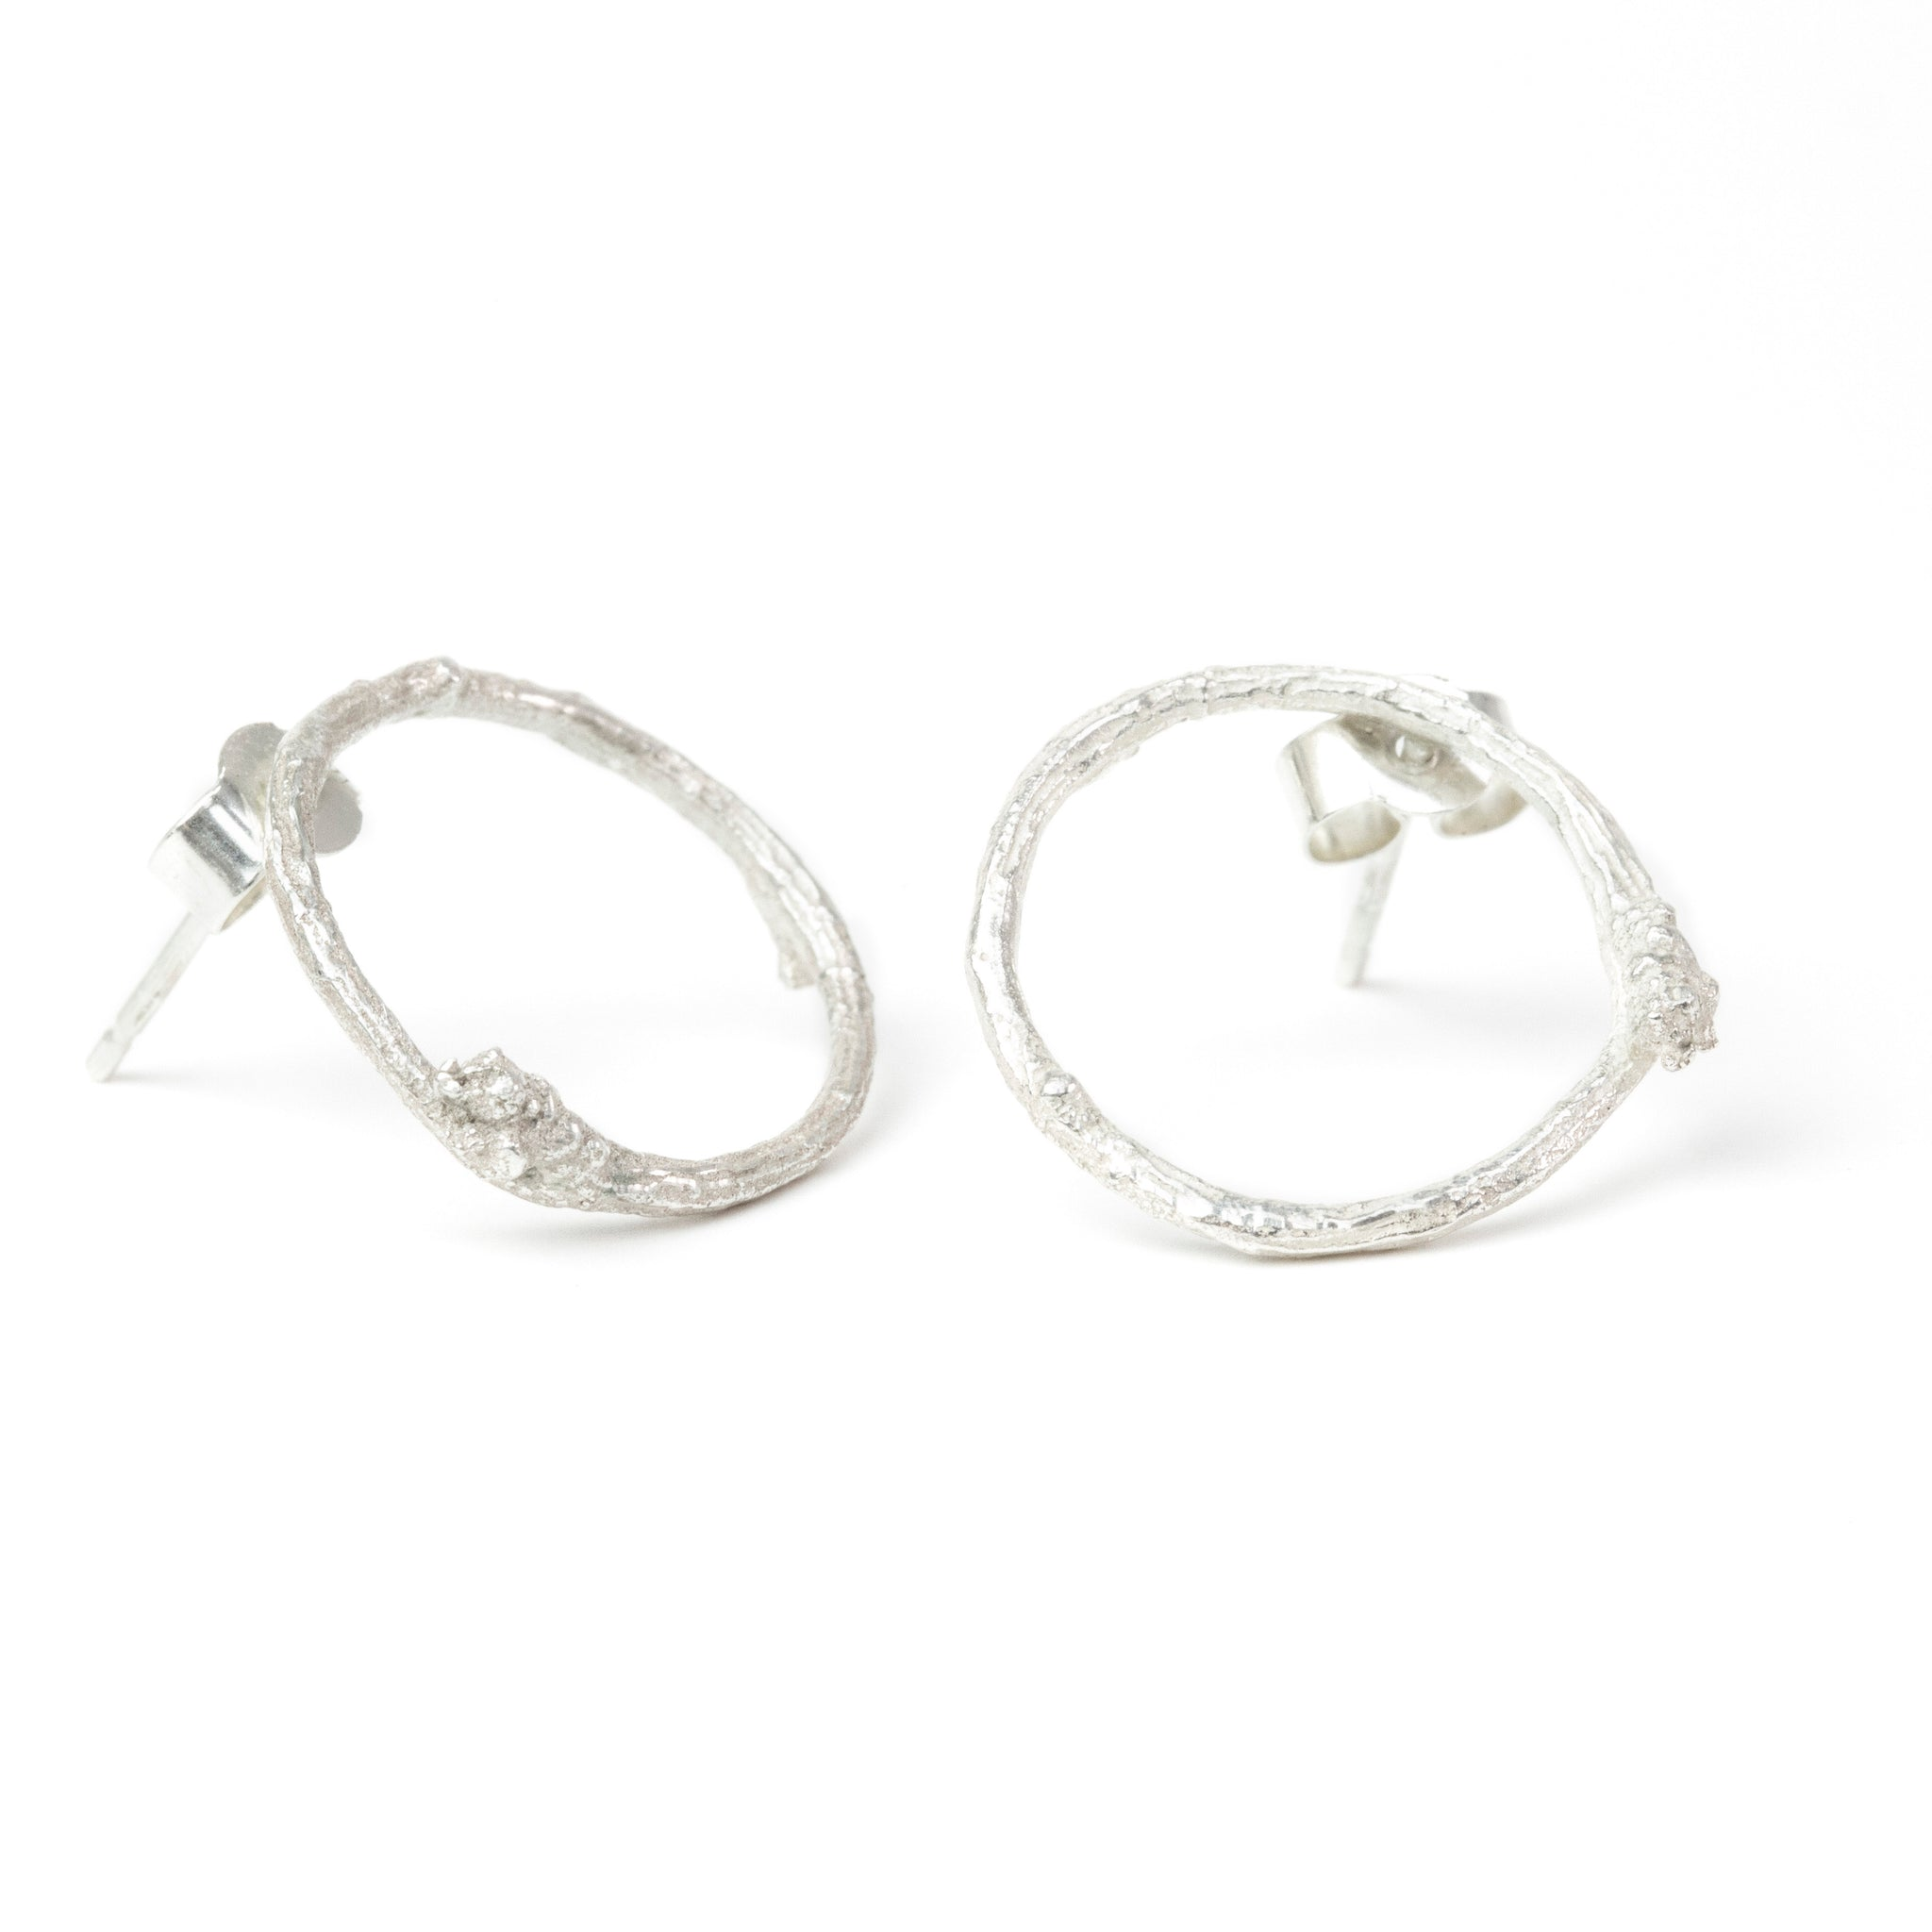 Silver Twig Circle Stud Earrings on white background